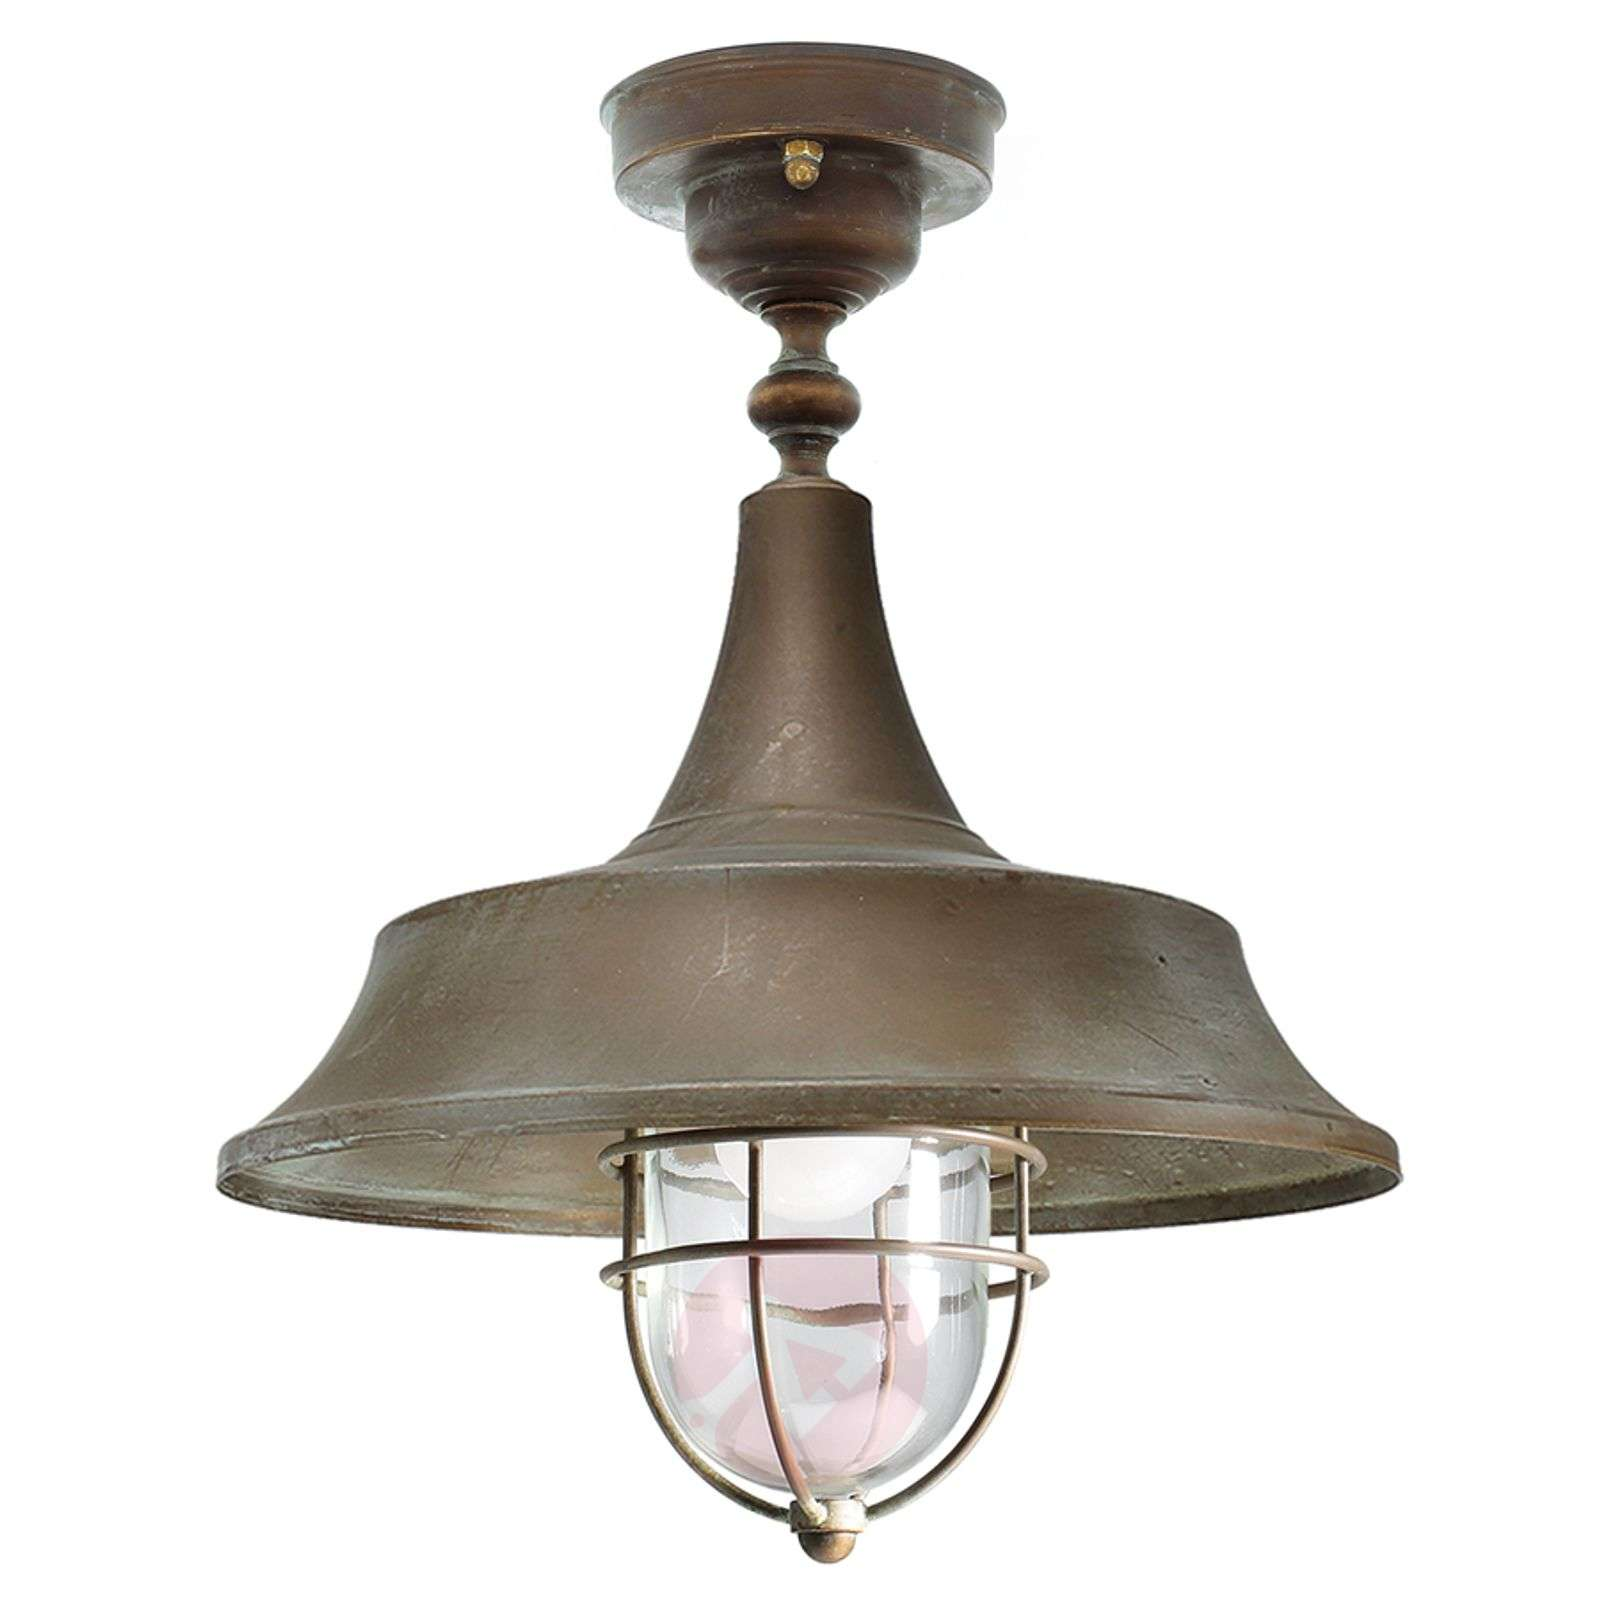 Robust ceiling light Diego for outdoor use-6515349-01